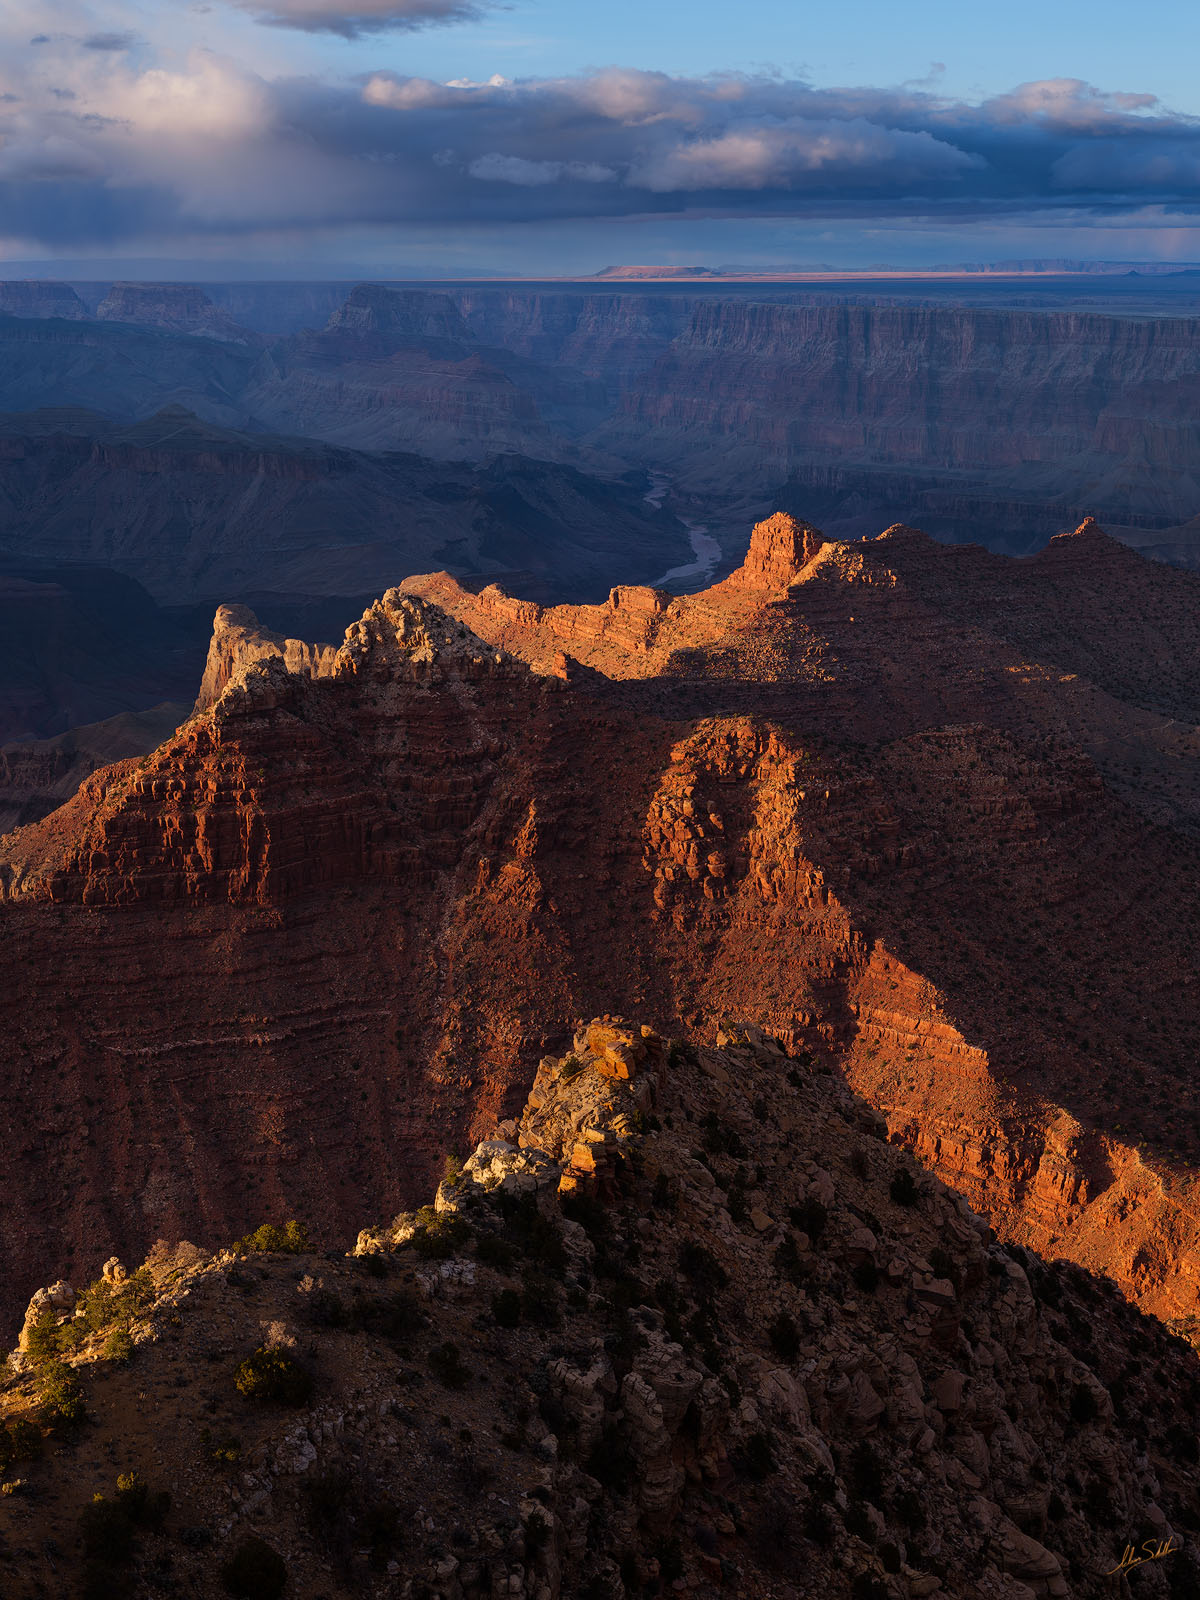 AZ, Arizona, Cardenas Butte, Escalante Butte, Colorado River, Grand Canyon, Lipan Point, National Park, South Rim, photo